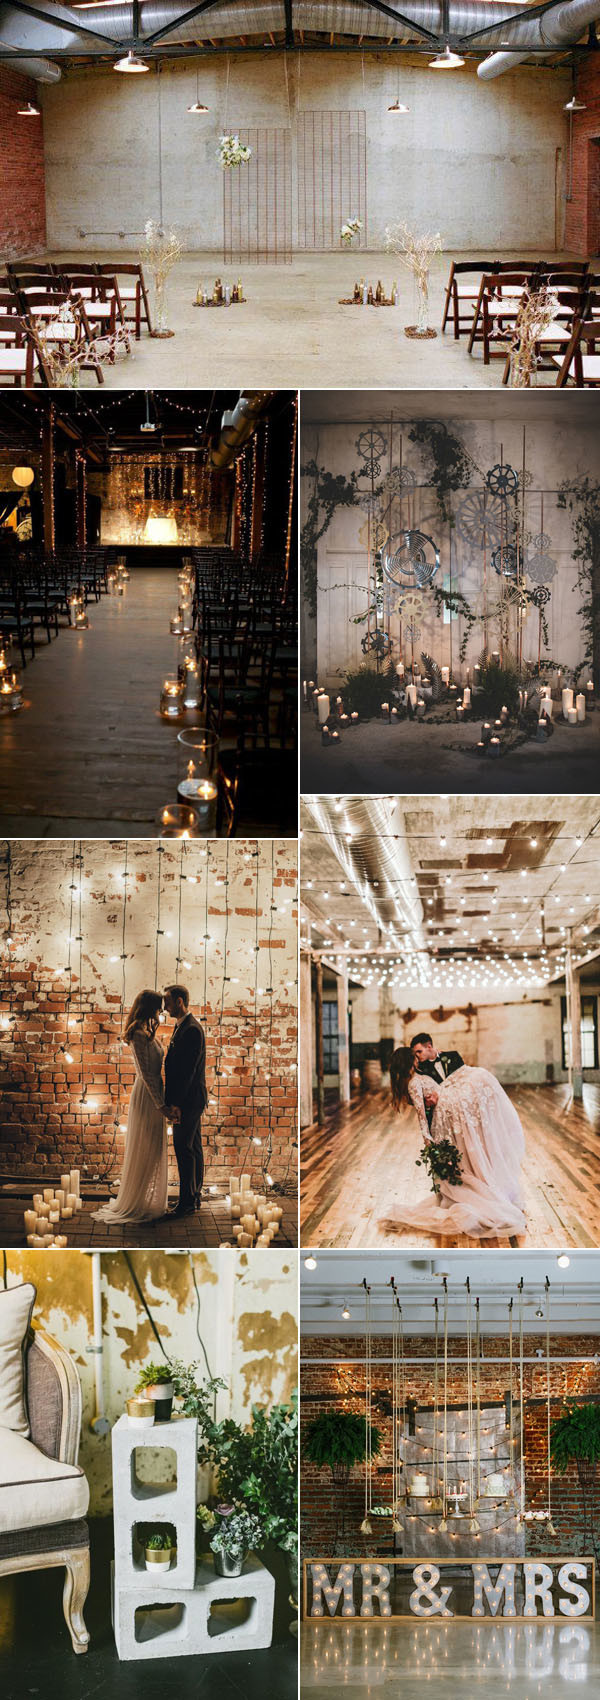 2017 trending industrial wedding ideas for ceremony